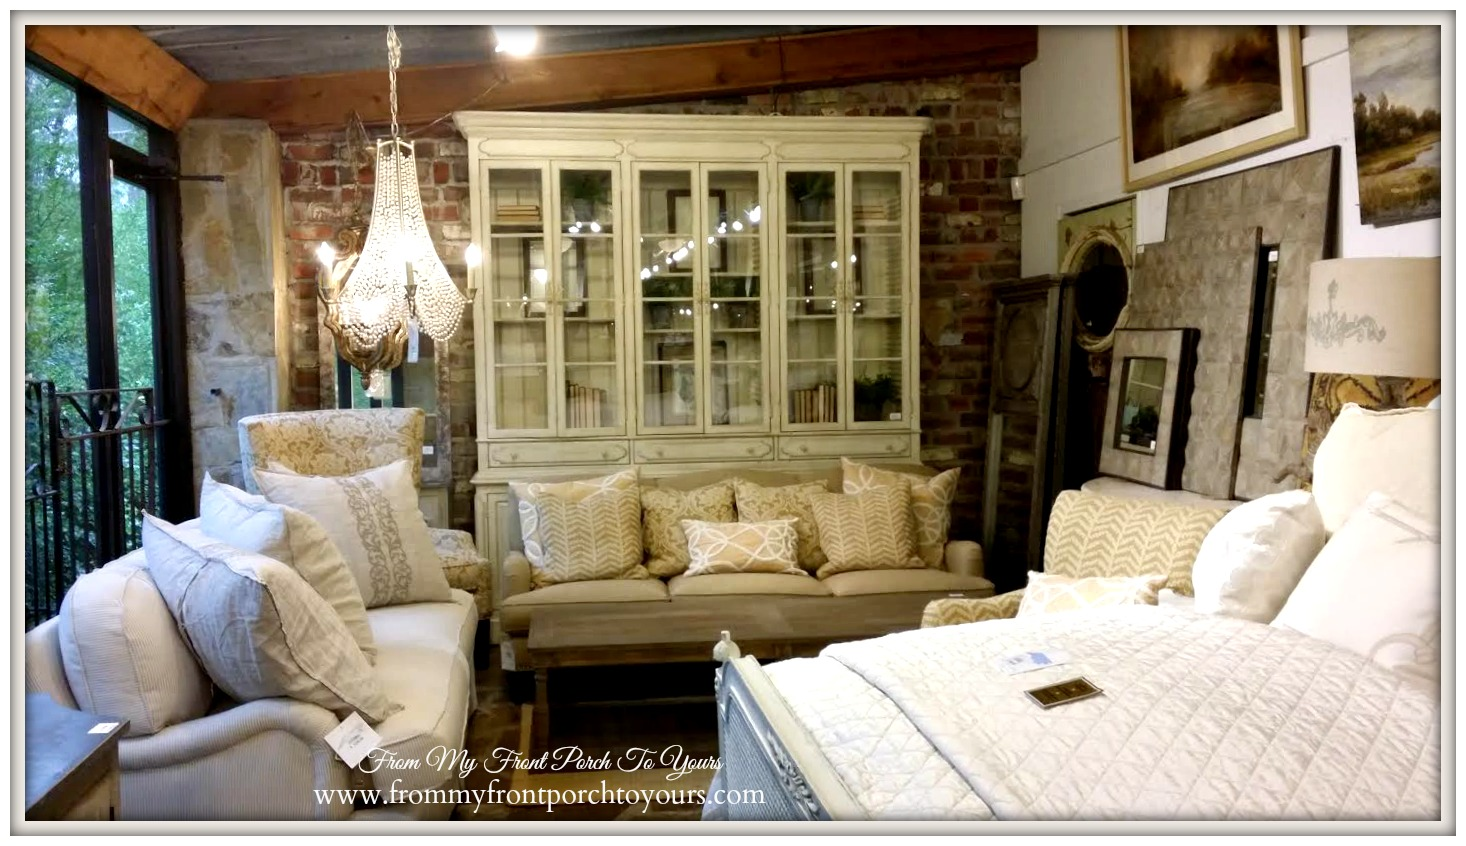 Laurie's Home Furnishings-French China Cabinet- From My Front Porch To Yours